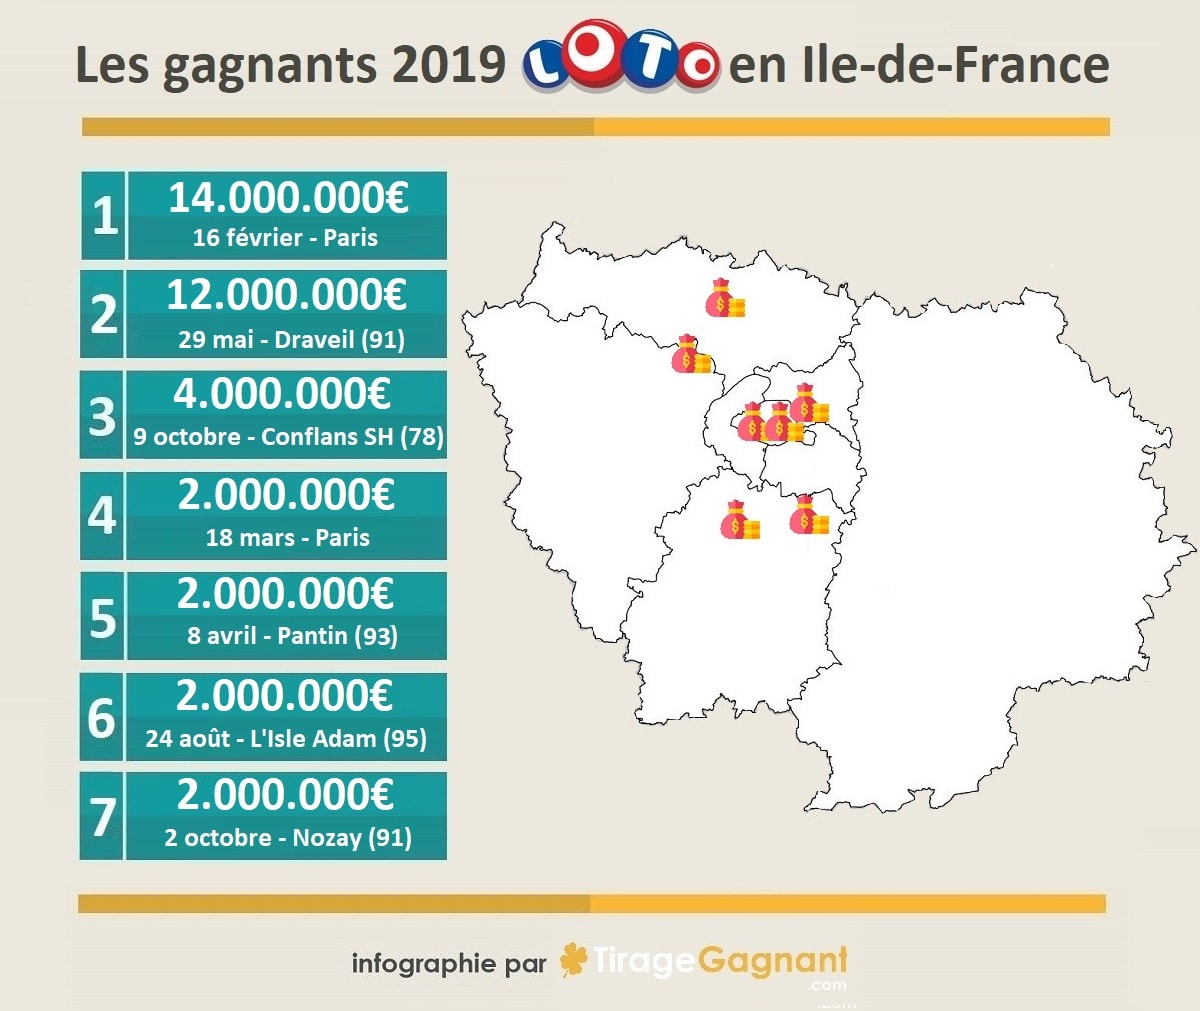 Gagnants Loto 2019 en Ile-de-France